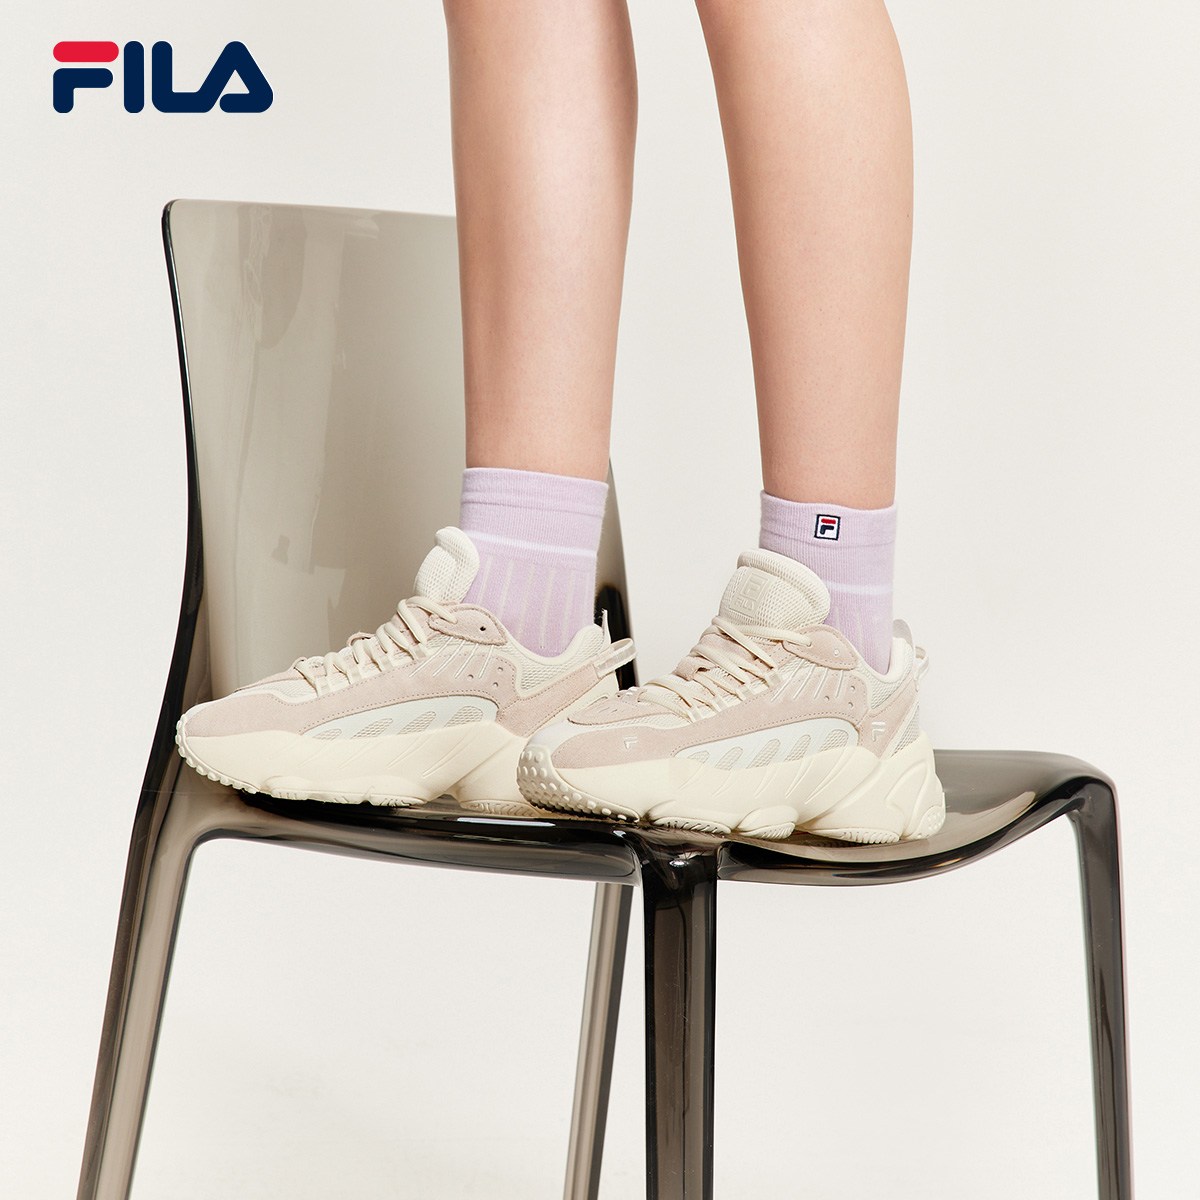 FILA Fiile ADE couple old shoes 2021 spring and summer new men's shoes retro casual shoes sports shoes women